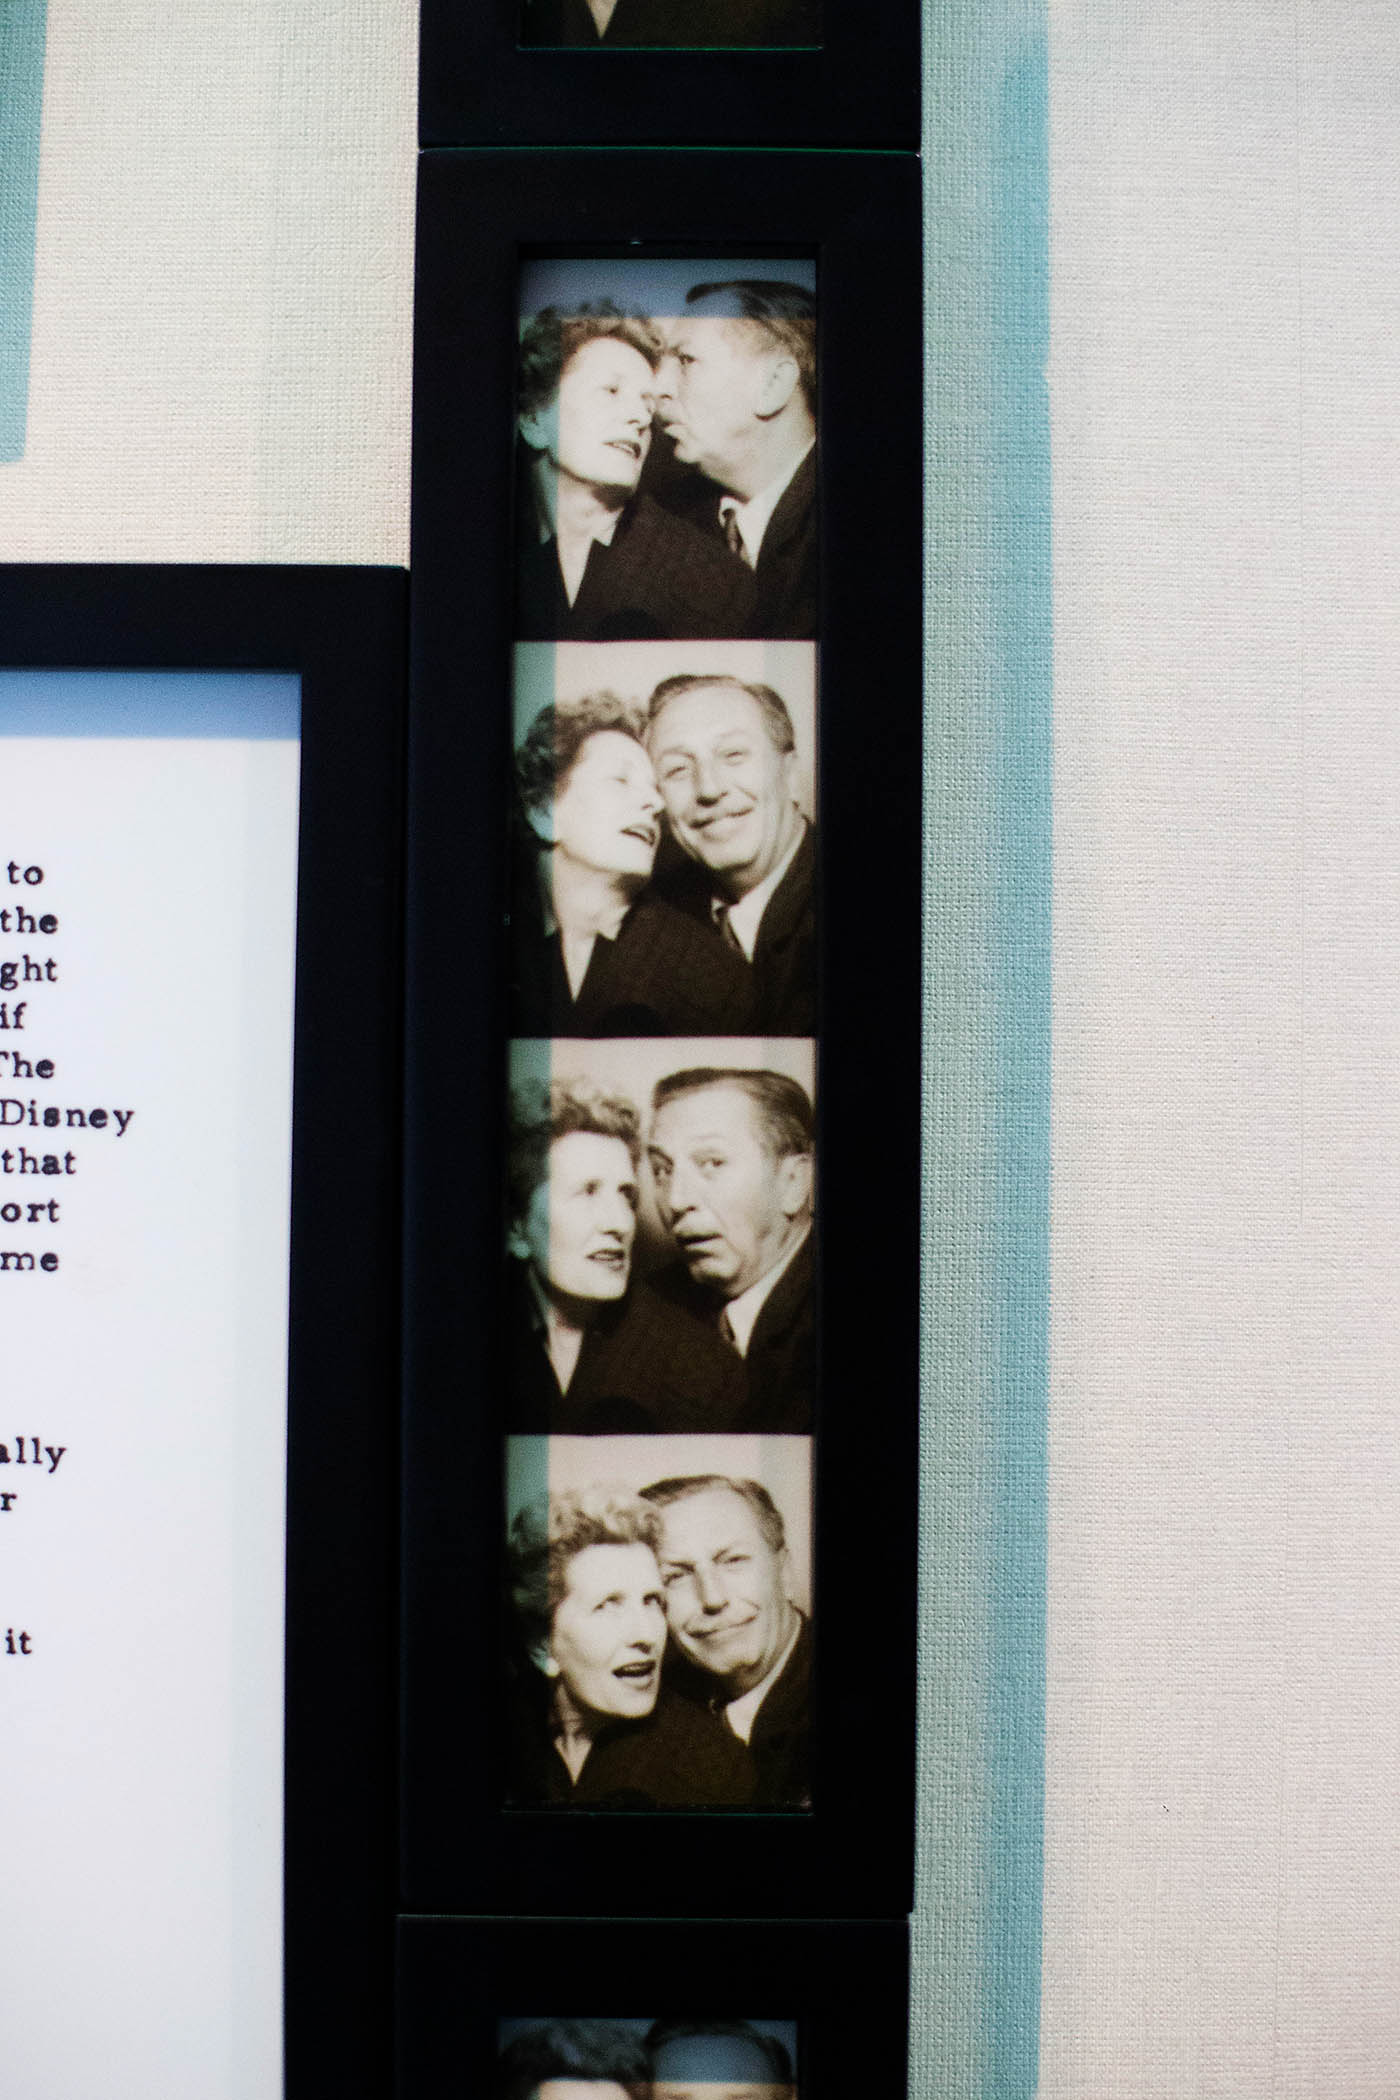 Reasons to love the Walt Disney Family Museum